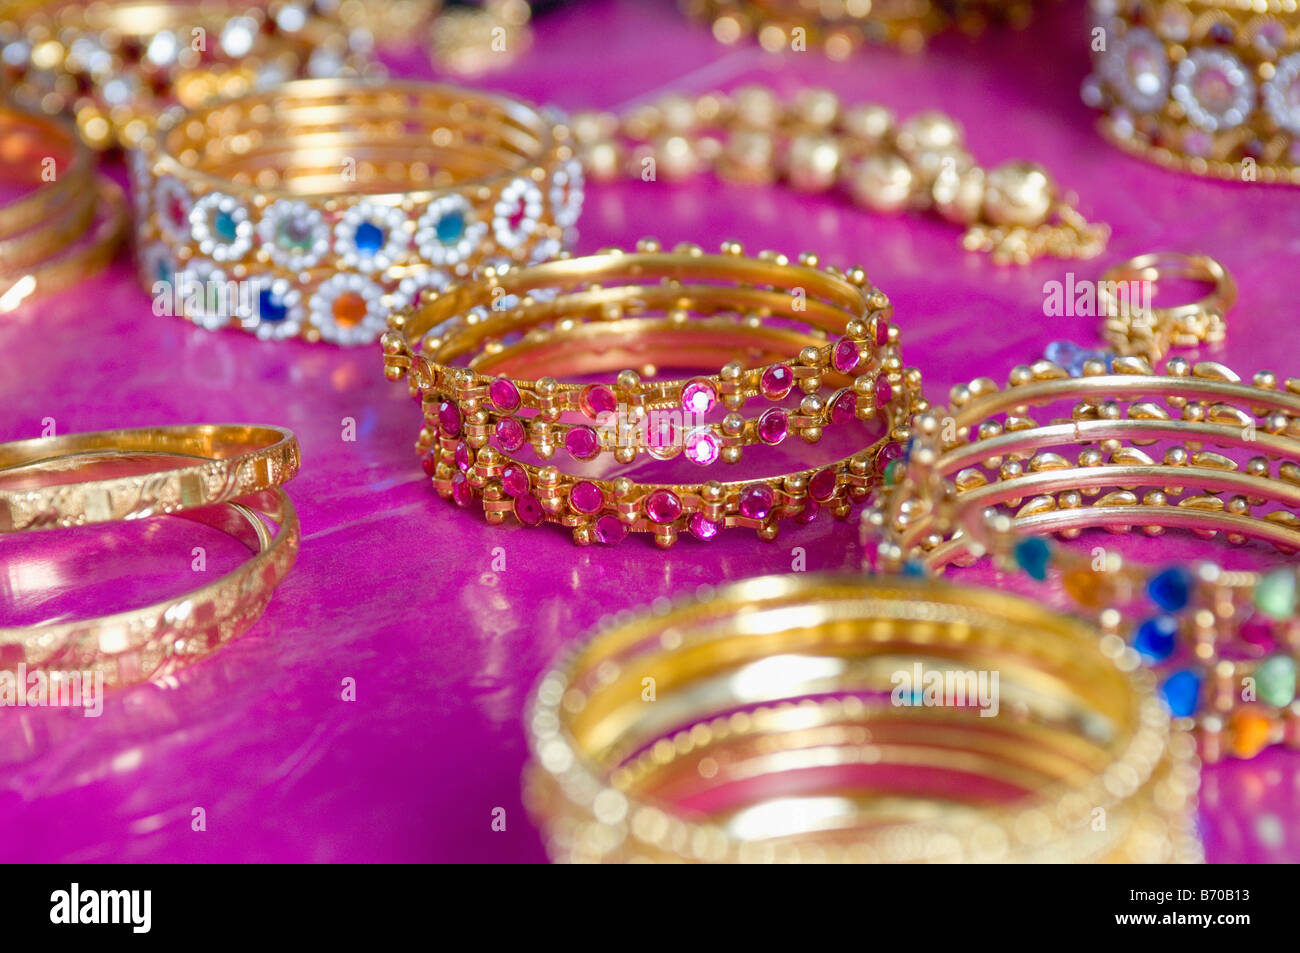 Expensive Gold Jewelry Sale In Stock Photos & Expensive Gold Jewelry ...